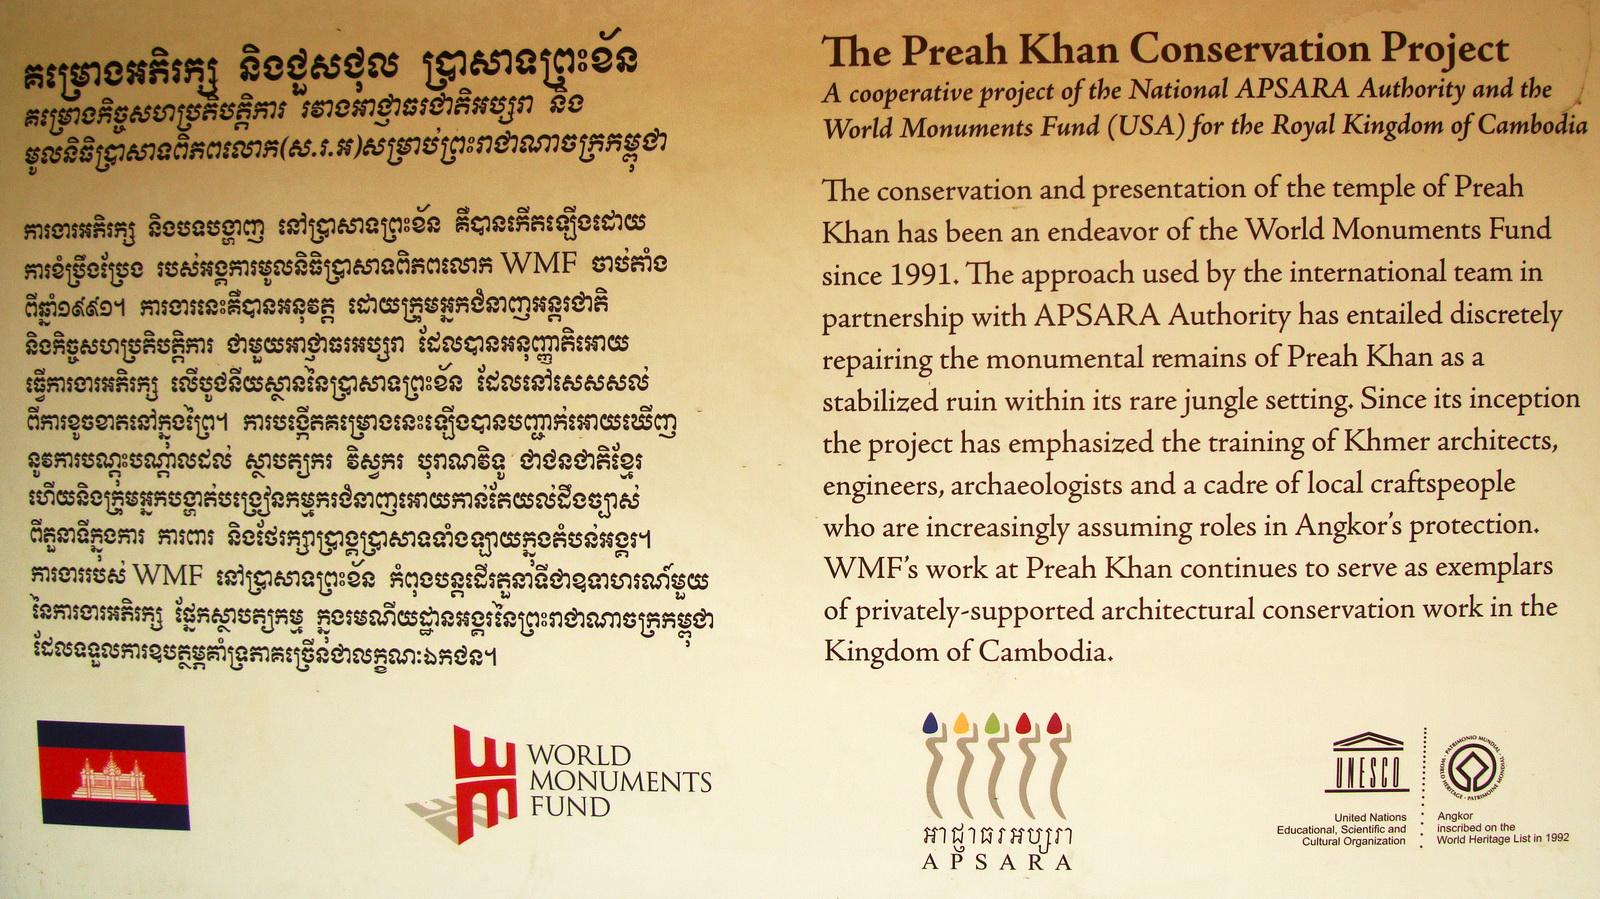 1 World Monuments Fund Notice Board of Preah Khan Temple 0C